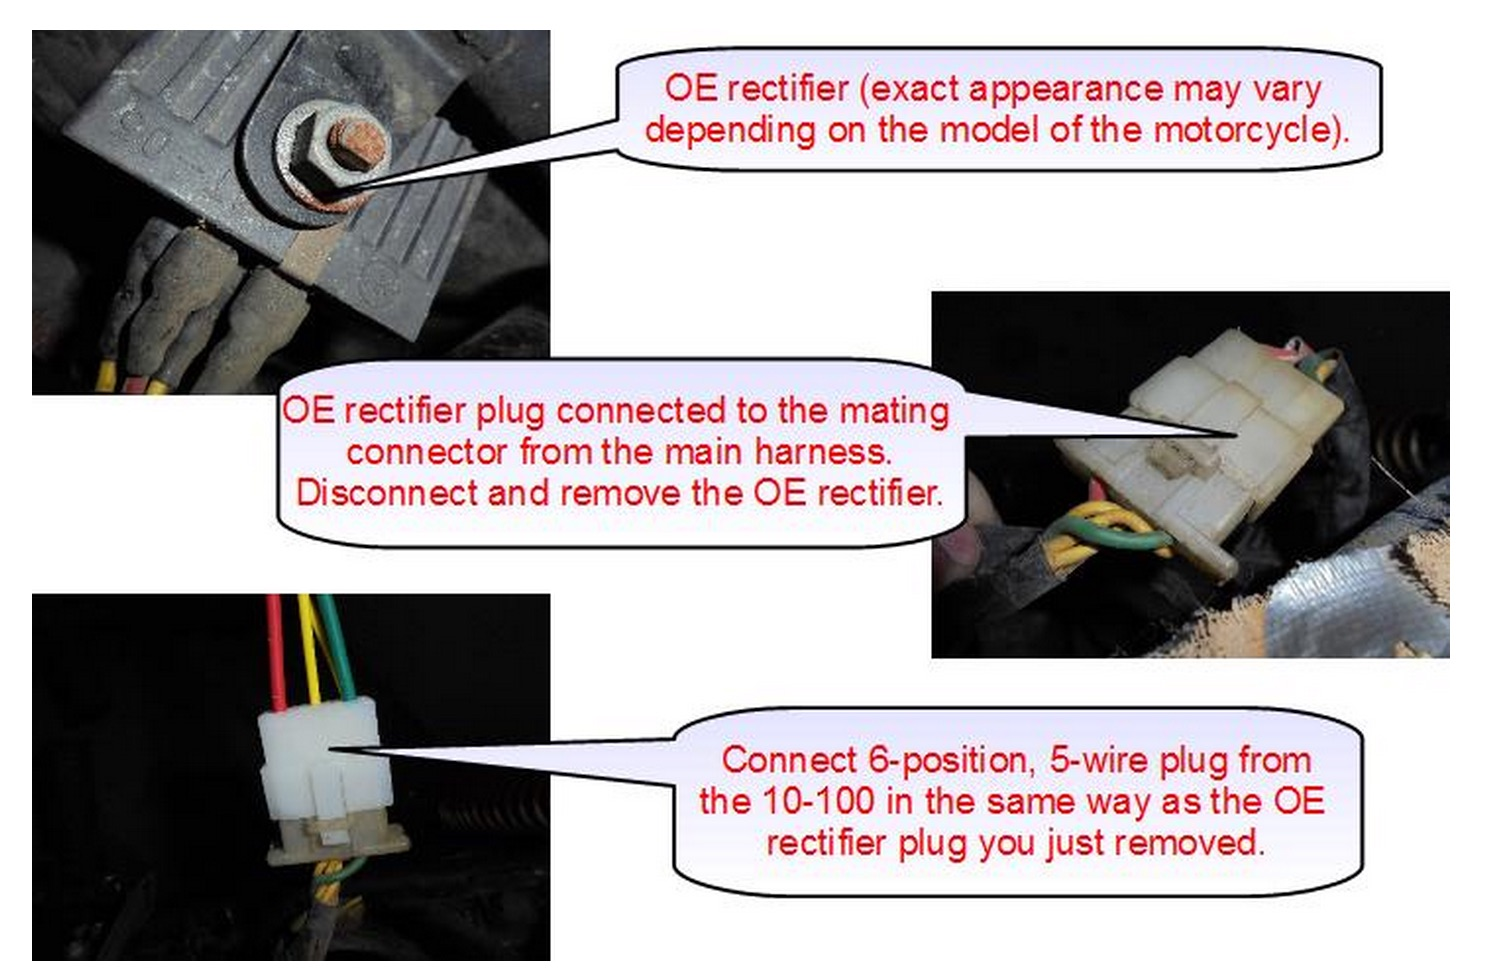 Rectifier Regulator Schematic Aftermarket Honda Oem Style Replacement Part Connecting The Disconnect 6 Position 5 Wire Connector From Oe Plug Identical On 10 100 In Its Place